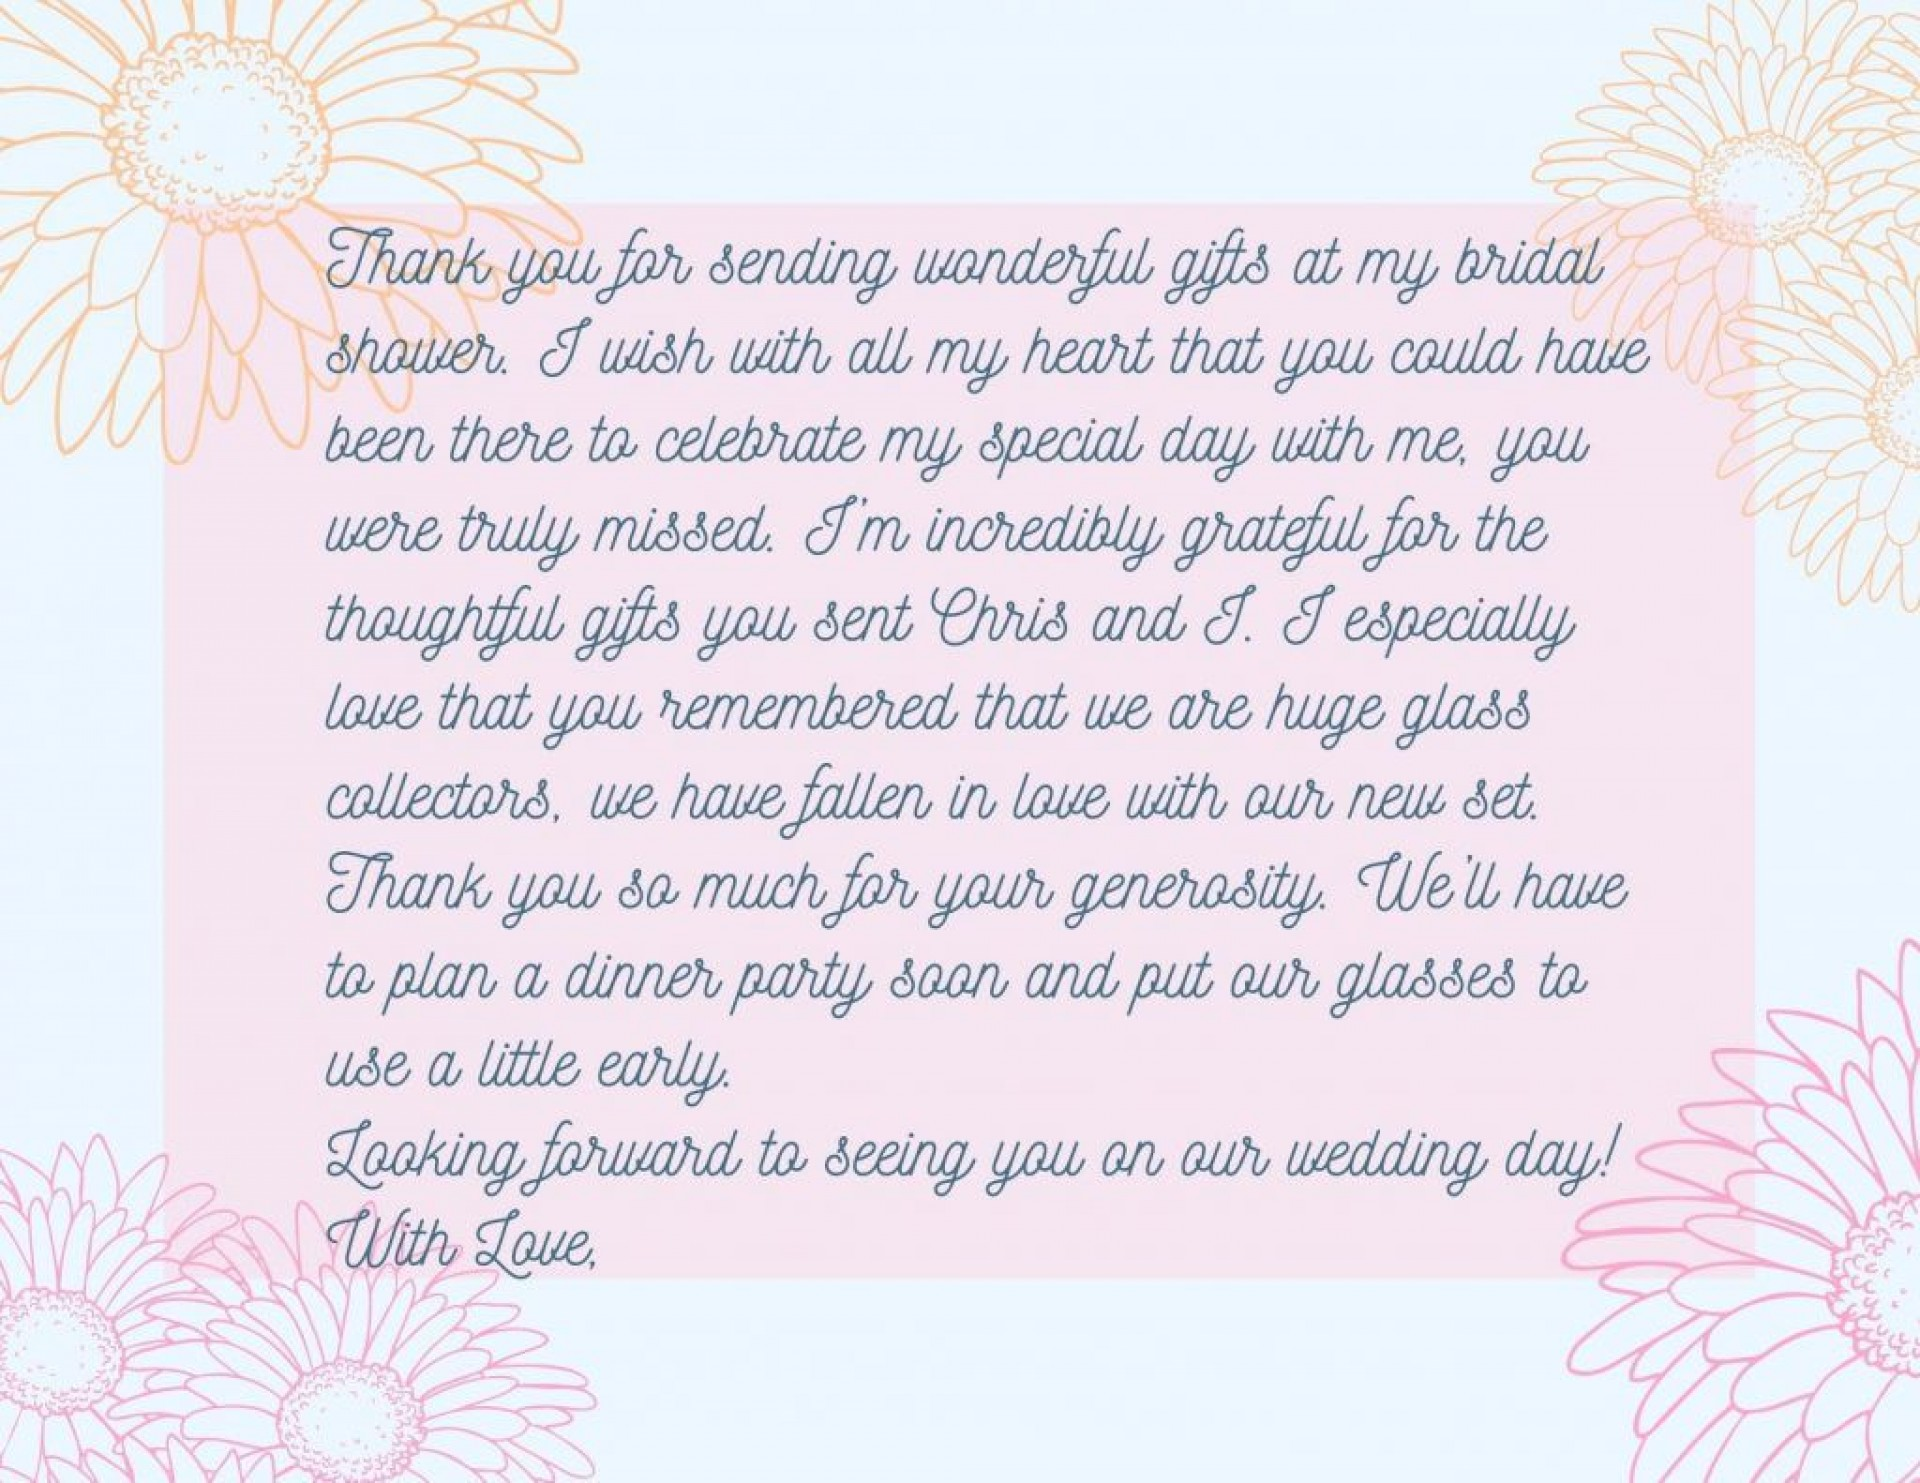 007 Incredible Thank You Note Template Wedding Shower Idea  Bridal Card Sample Wording1920